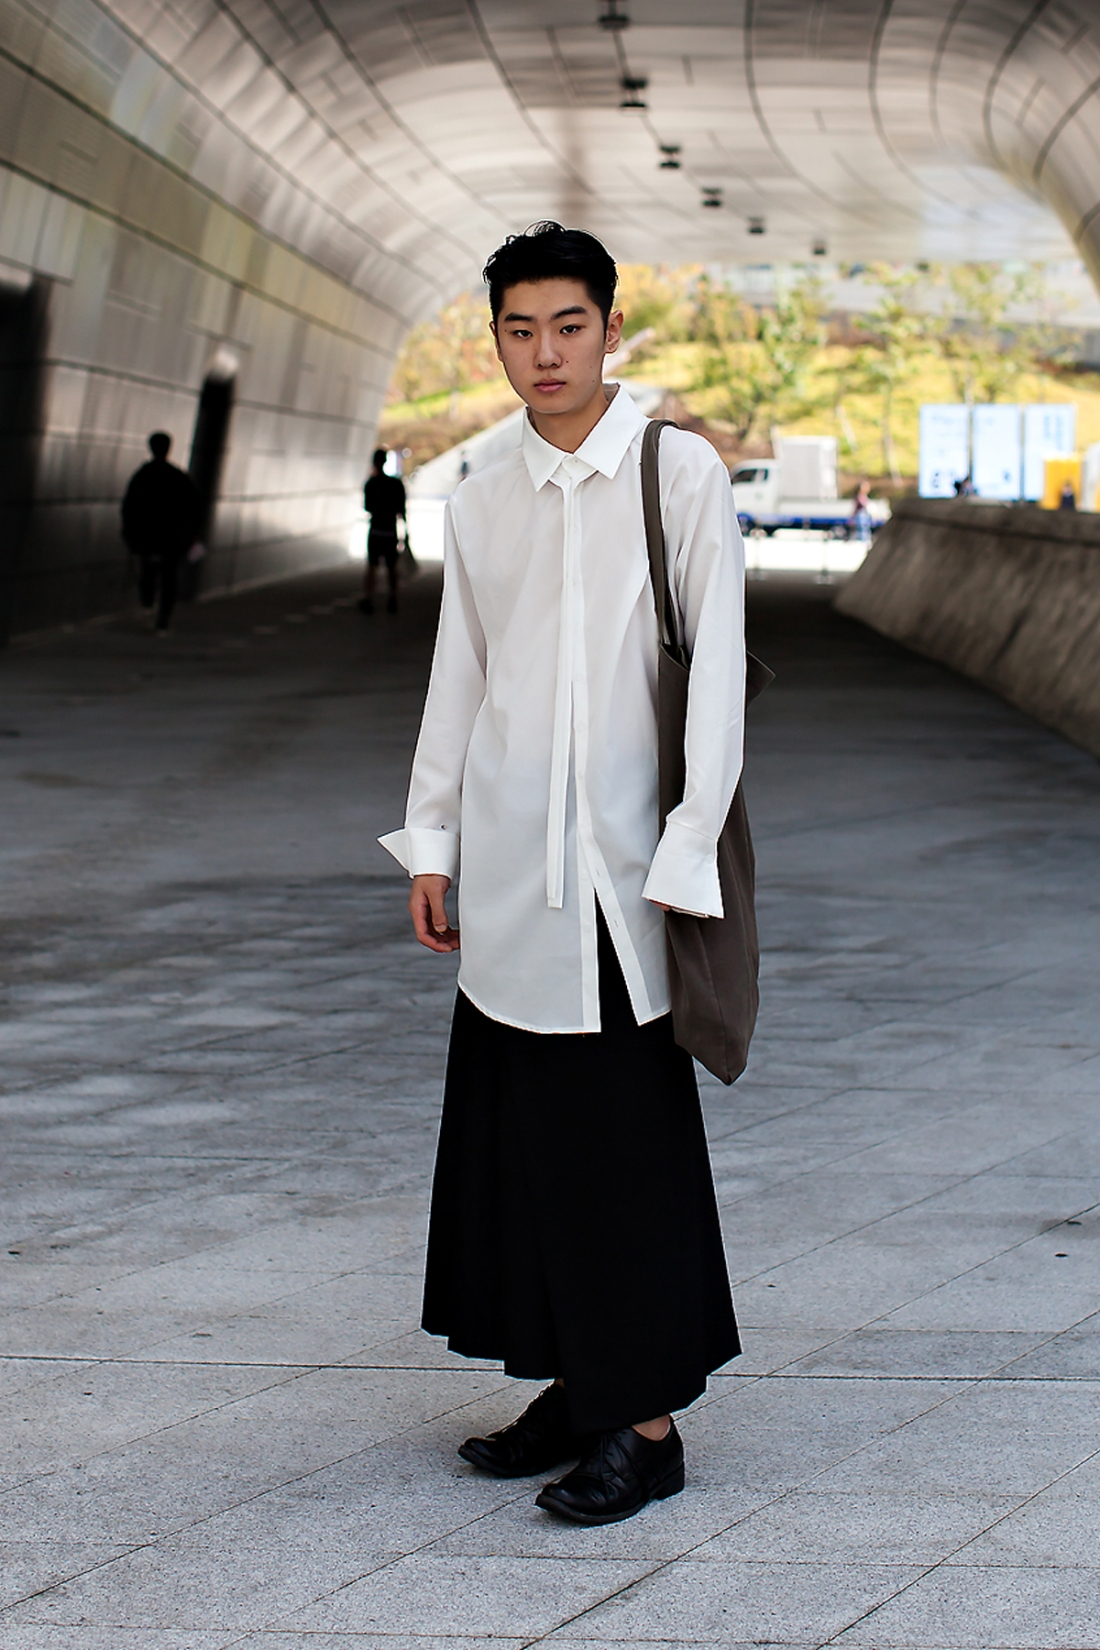 Hong Seungkyu, SEOUL FASHION WEEK 2017 S:S.jpg